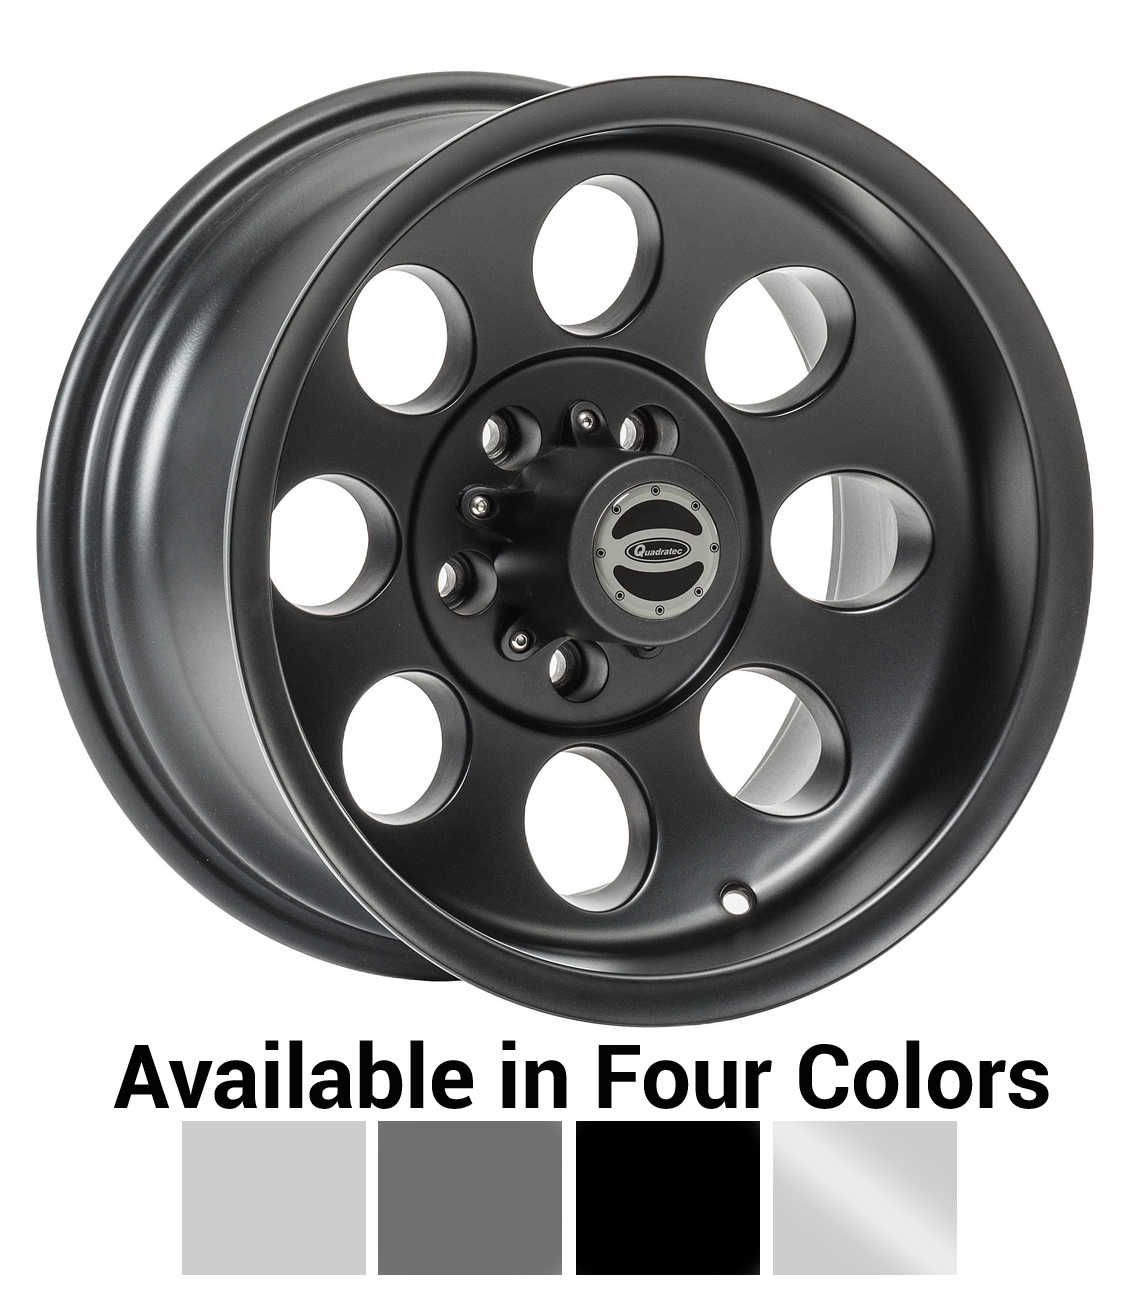 Quadratec 39 S New Baja Xtreme Wheels Provide Classic Styling